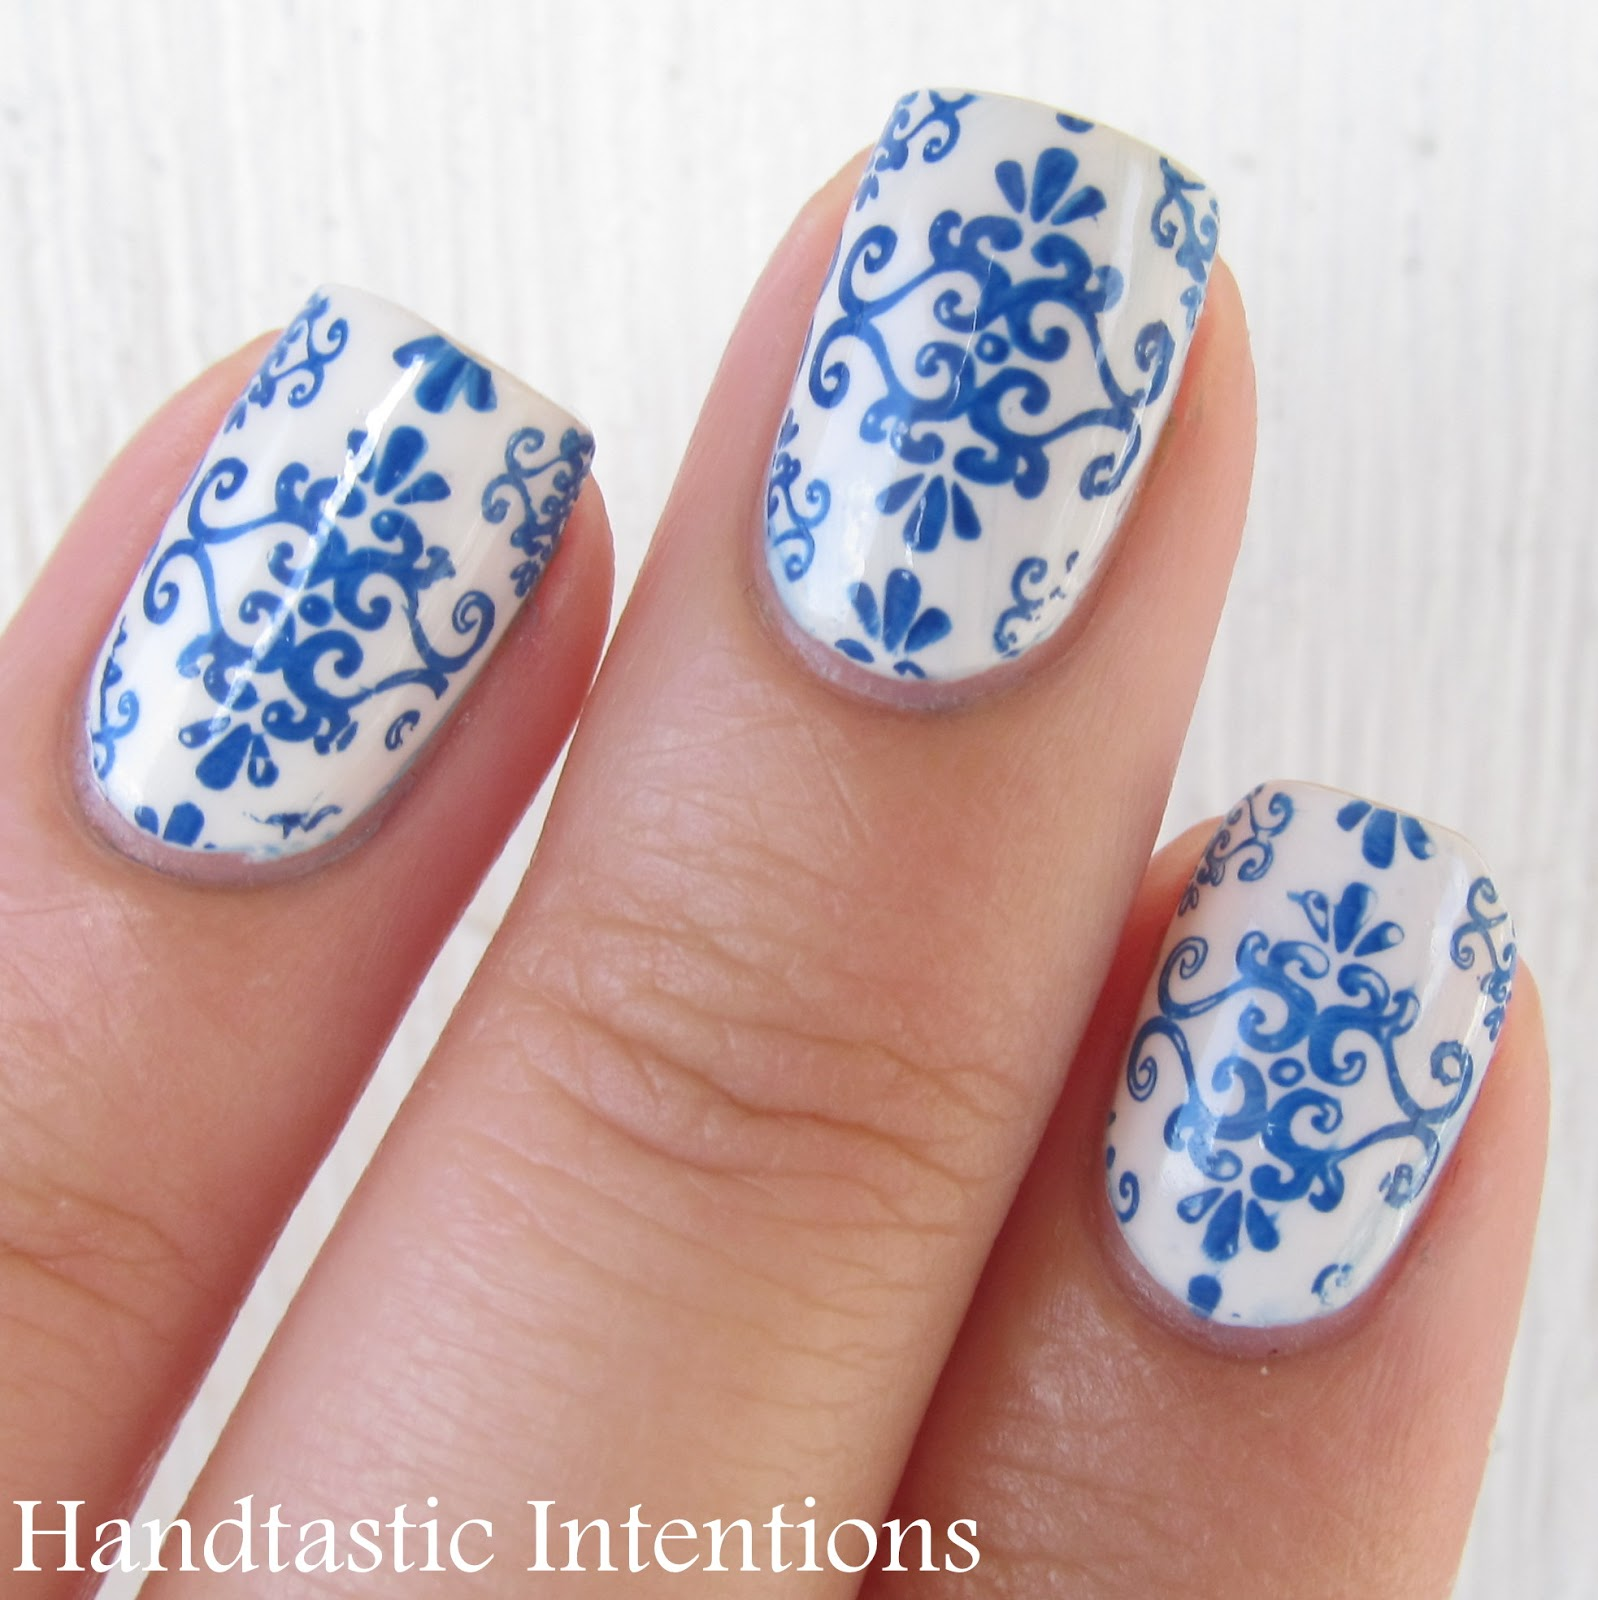 White Nail Art: Handtastic Intentions: Nail Art: Blue And White Ceramics